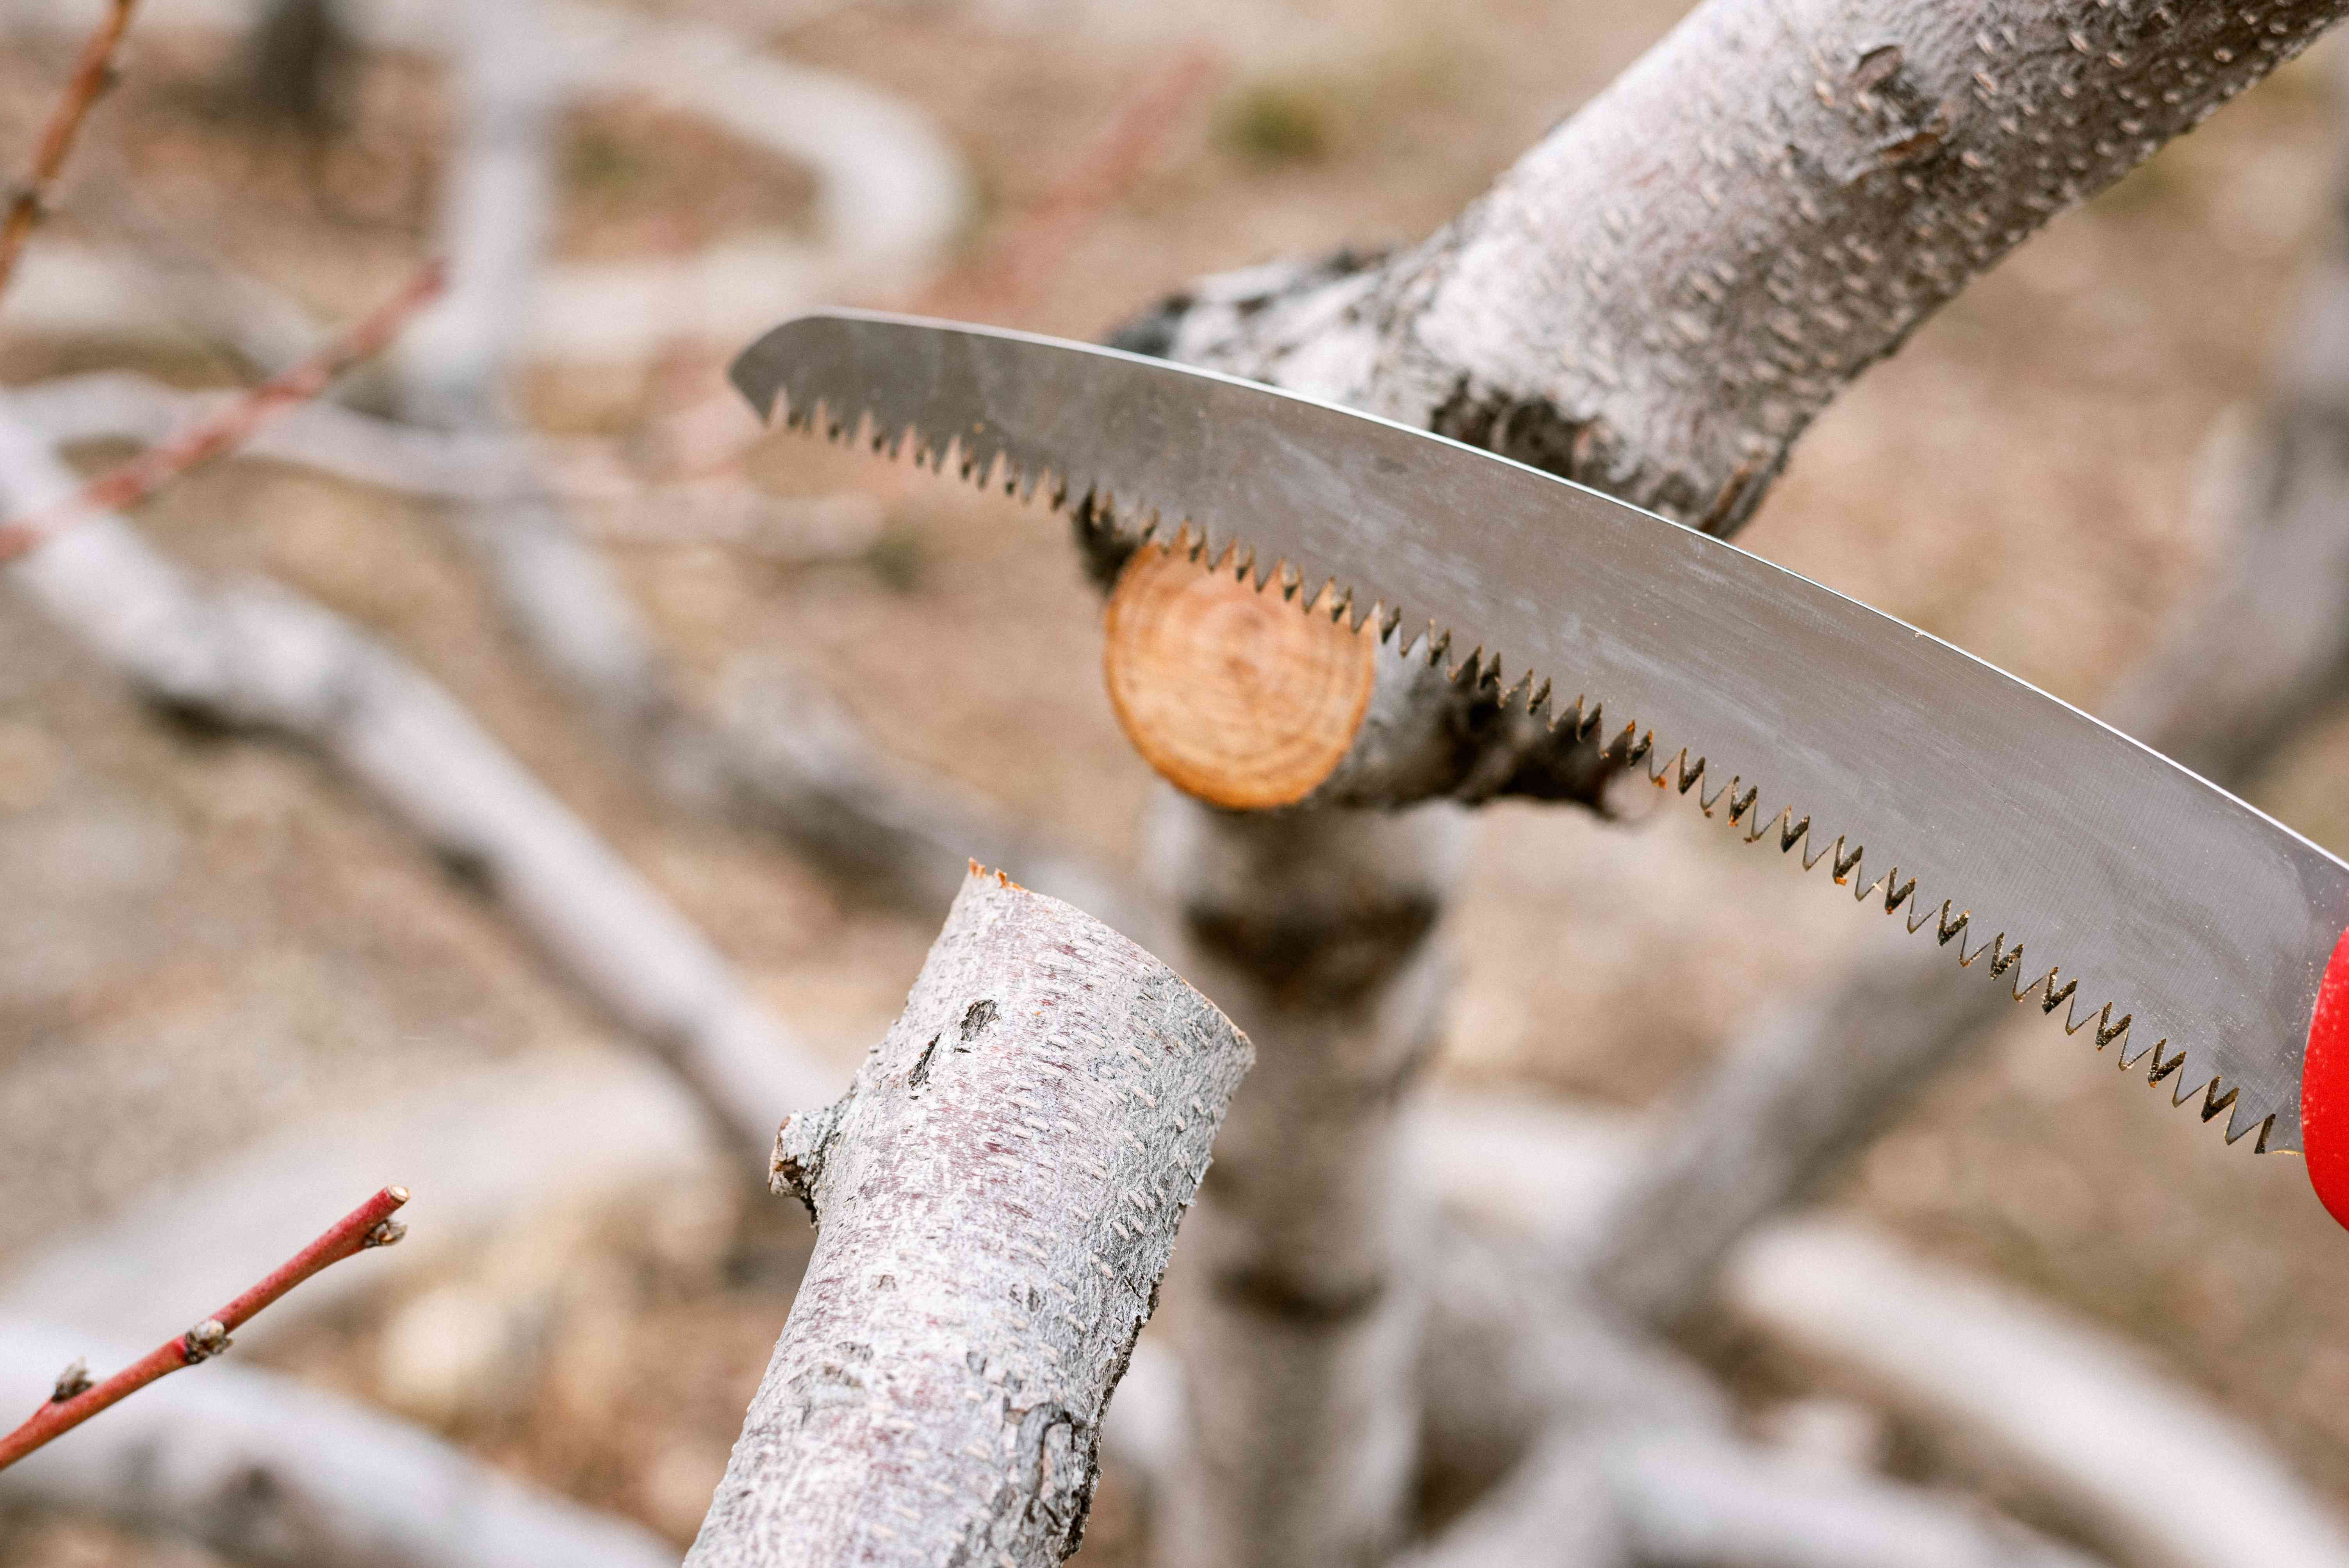 Shrub branch cut away smoothly with pruning saw